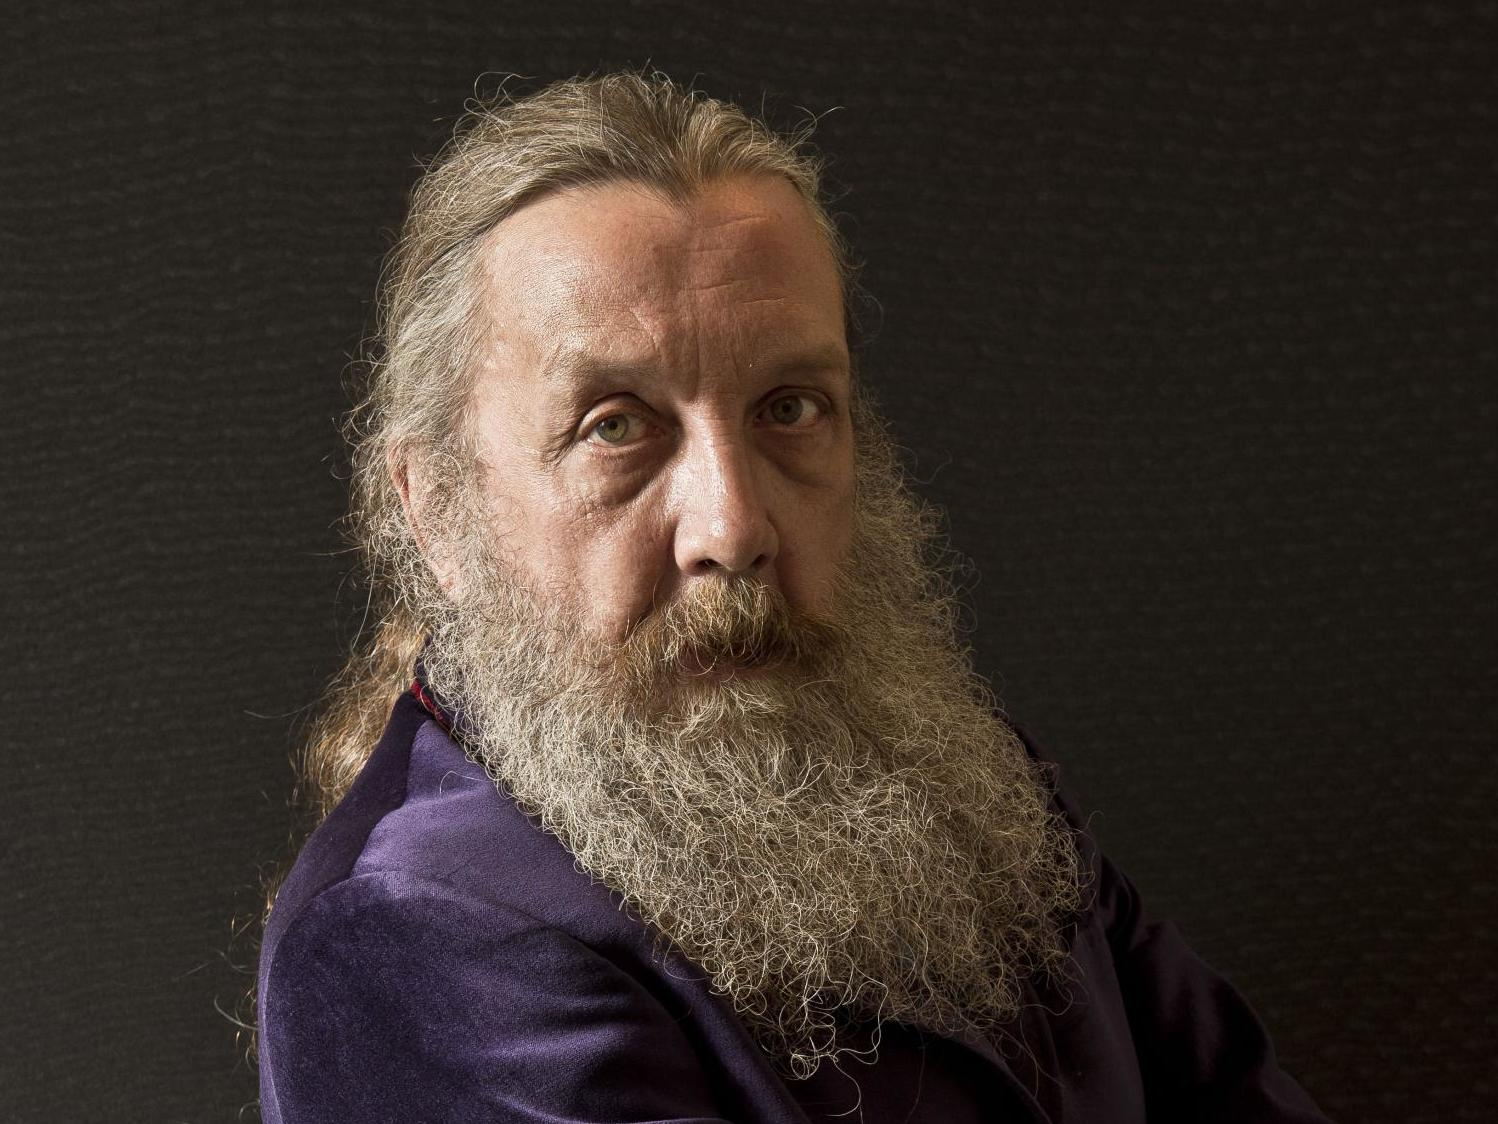 Self-proclaimed anarchist Alan Moore announces he'll vote in an election for first time in 40 years